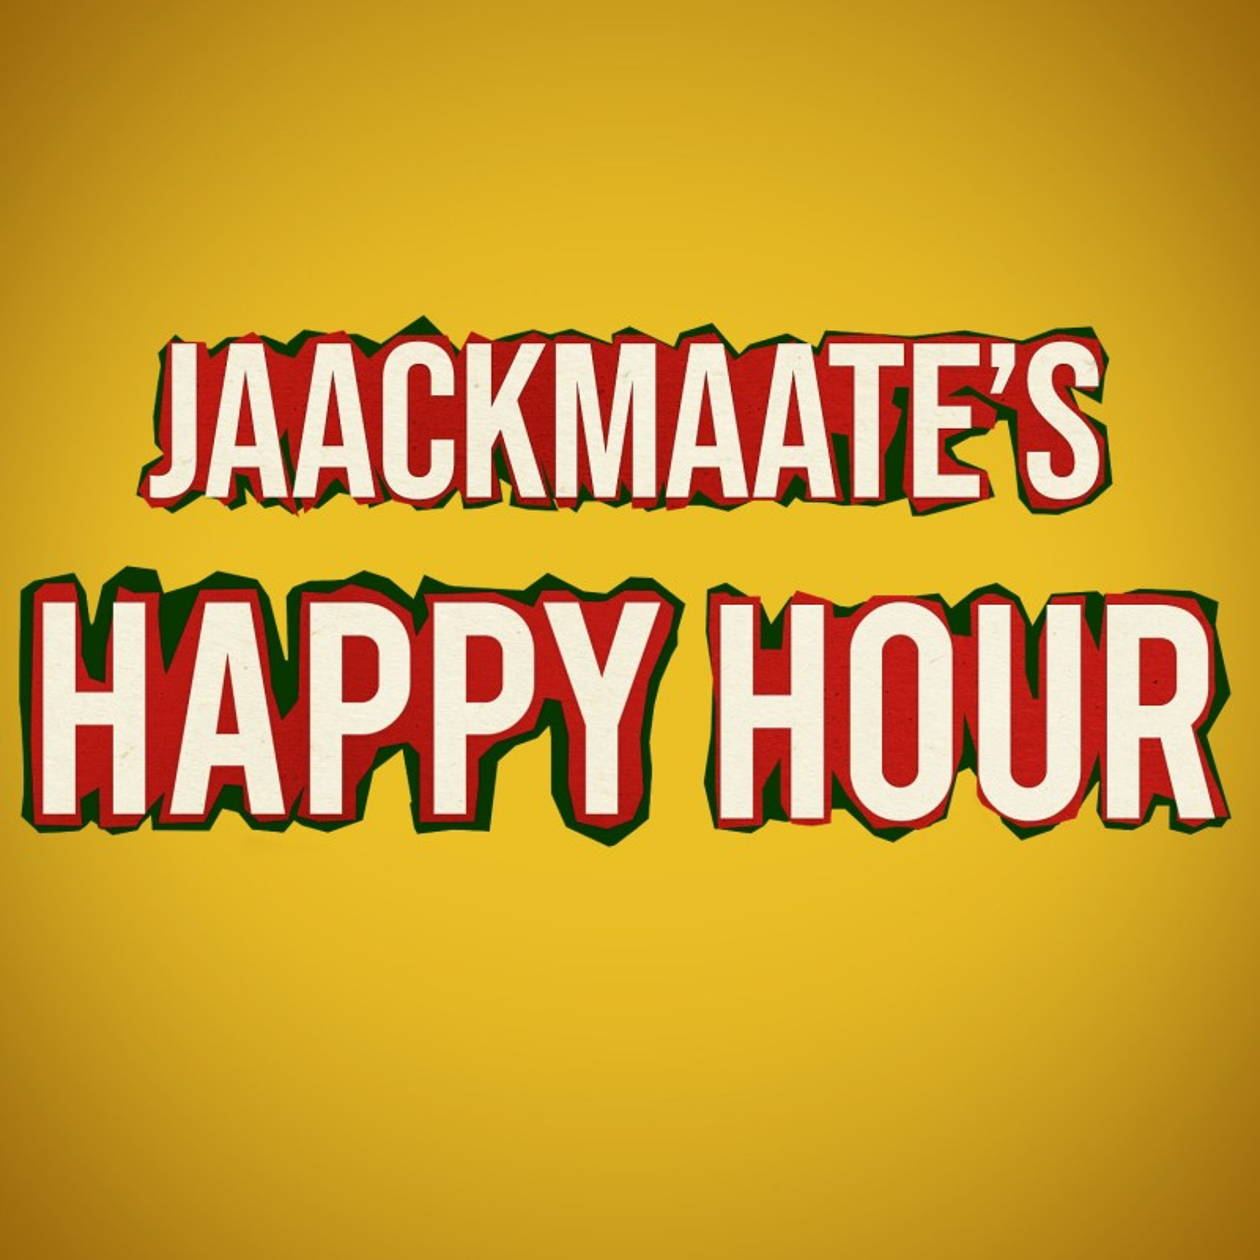 Artwork for the JaackMaate's Happy Hour podcast.